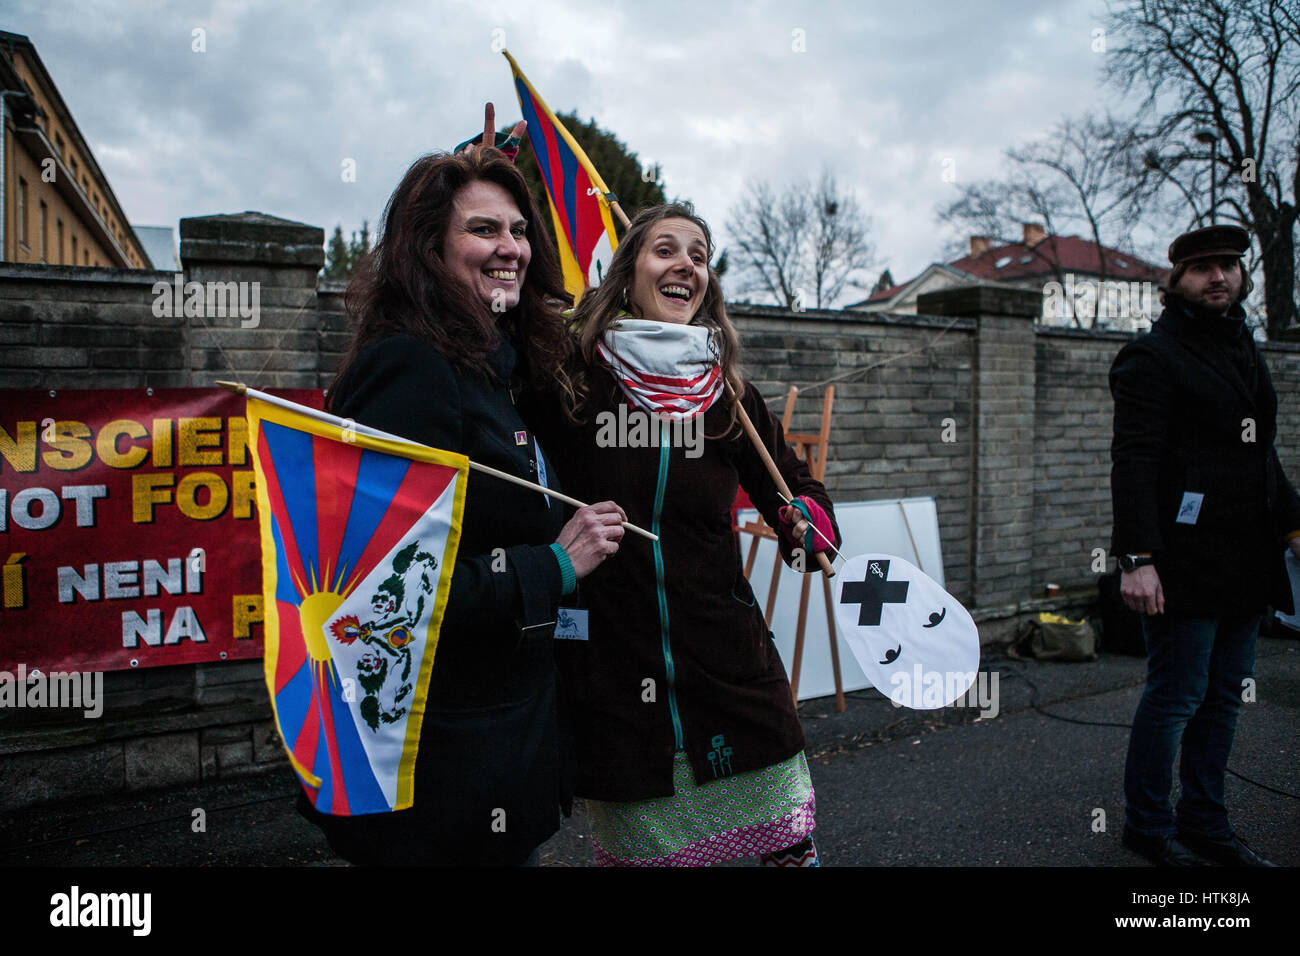 March 10, 2017 - Czechs are supporting Tibet !.Happening that happened in Prague infront of the embassy of China - Stock Image